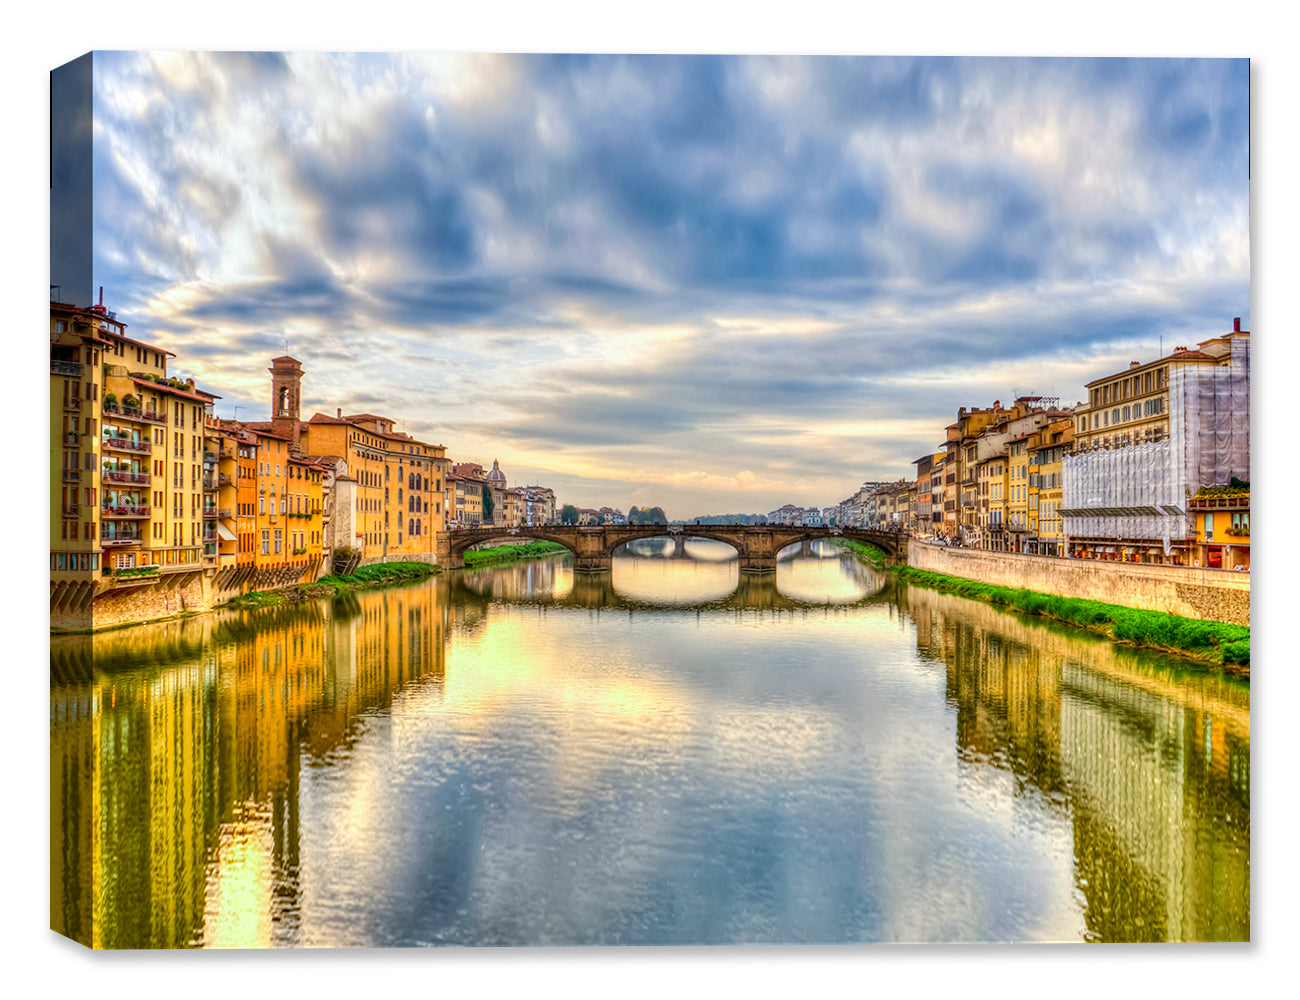 Arno River View - Italy